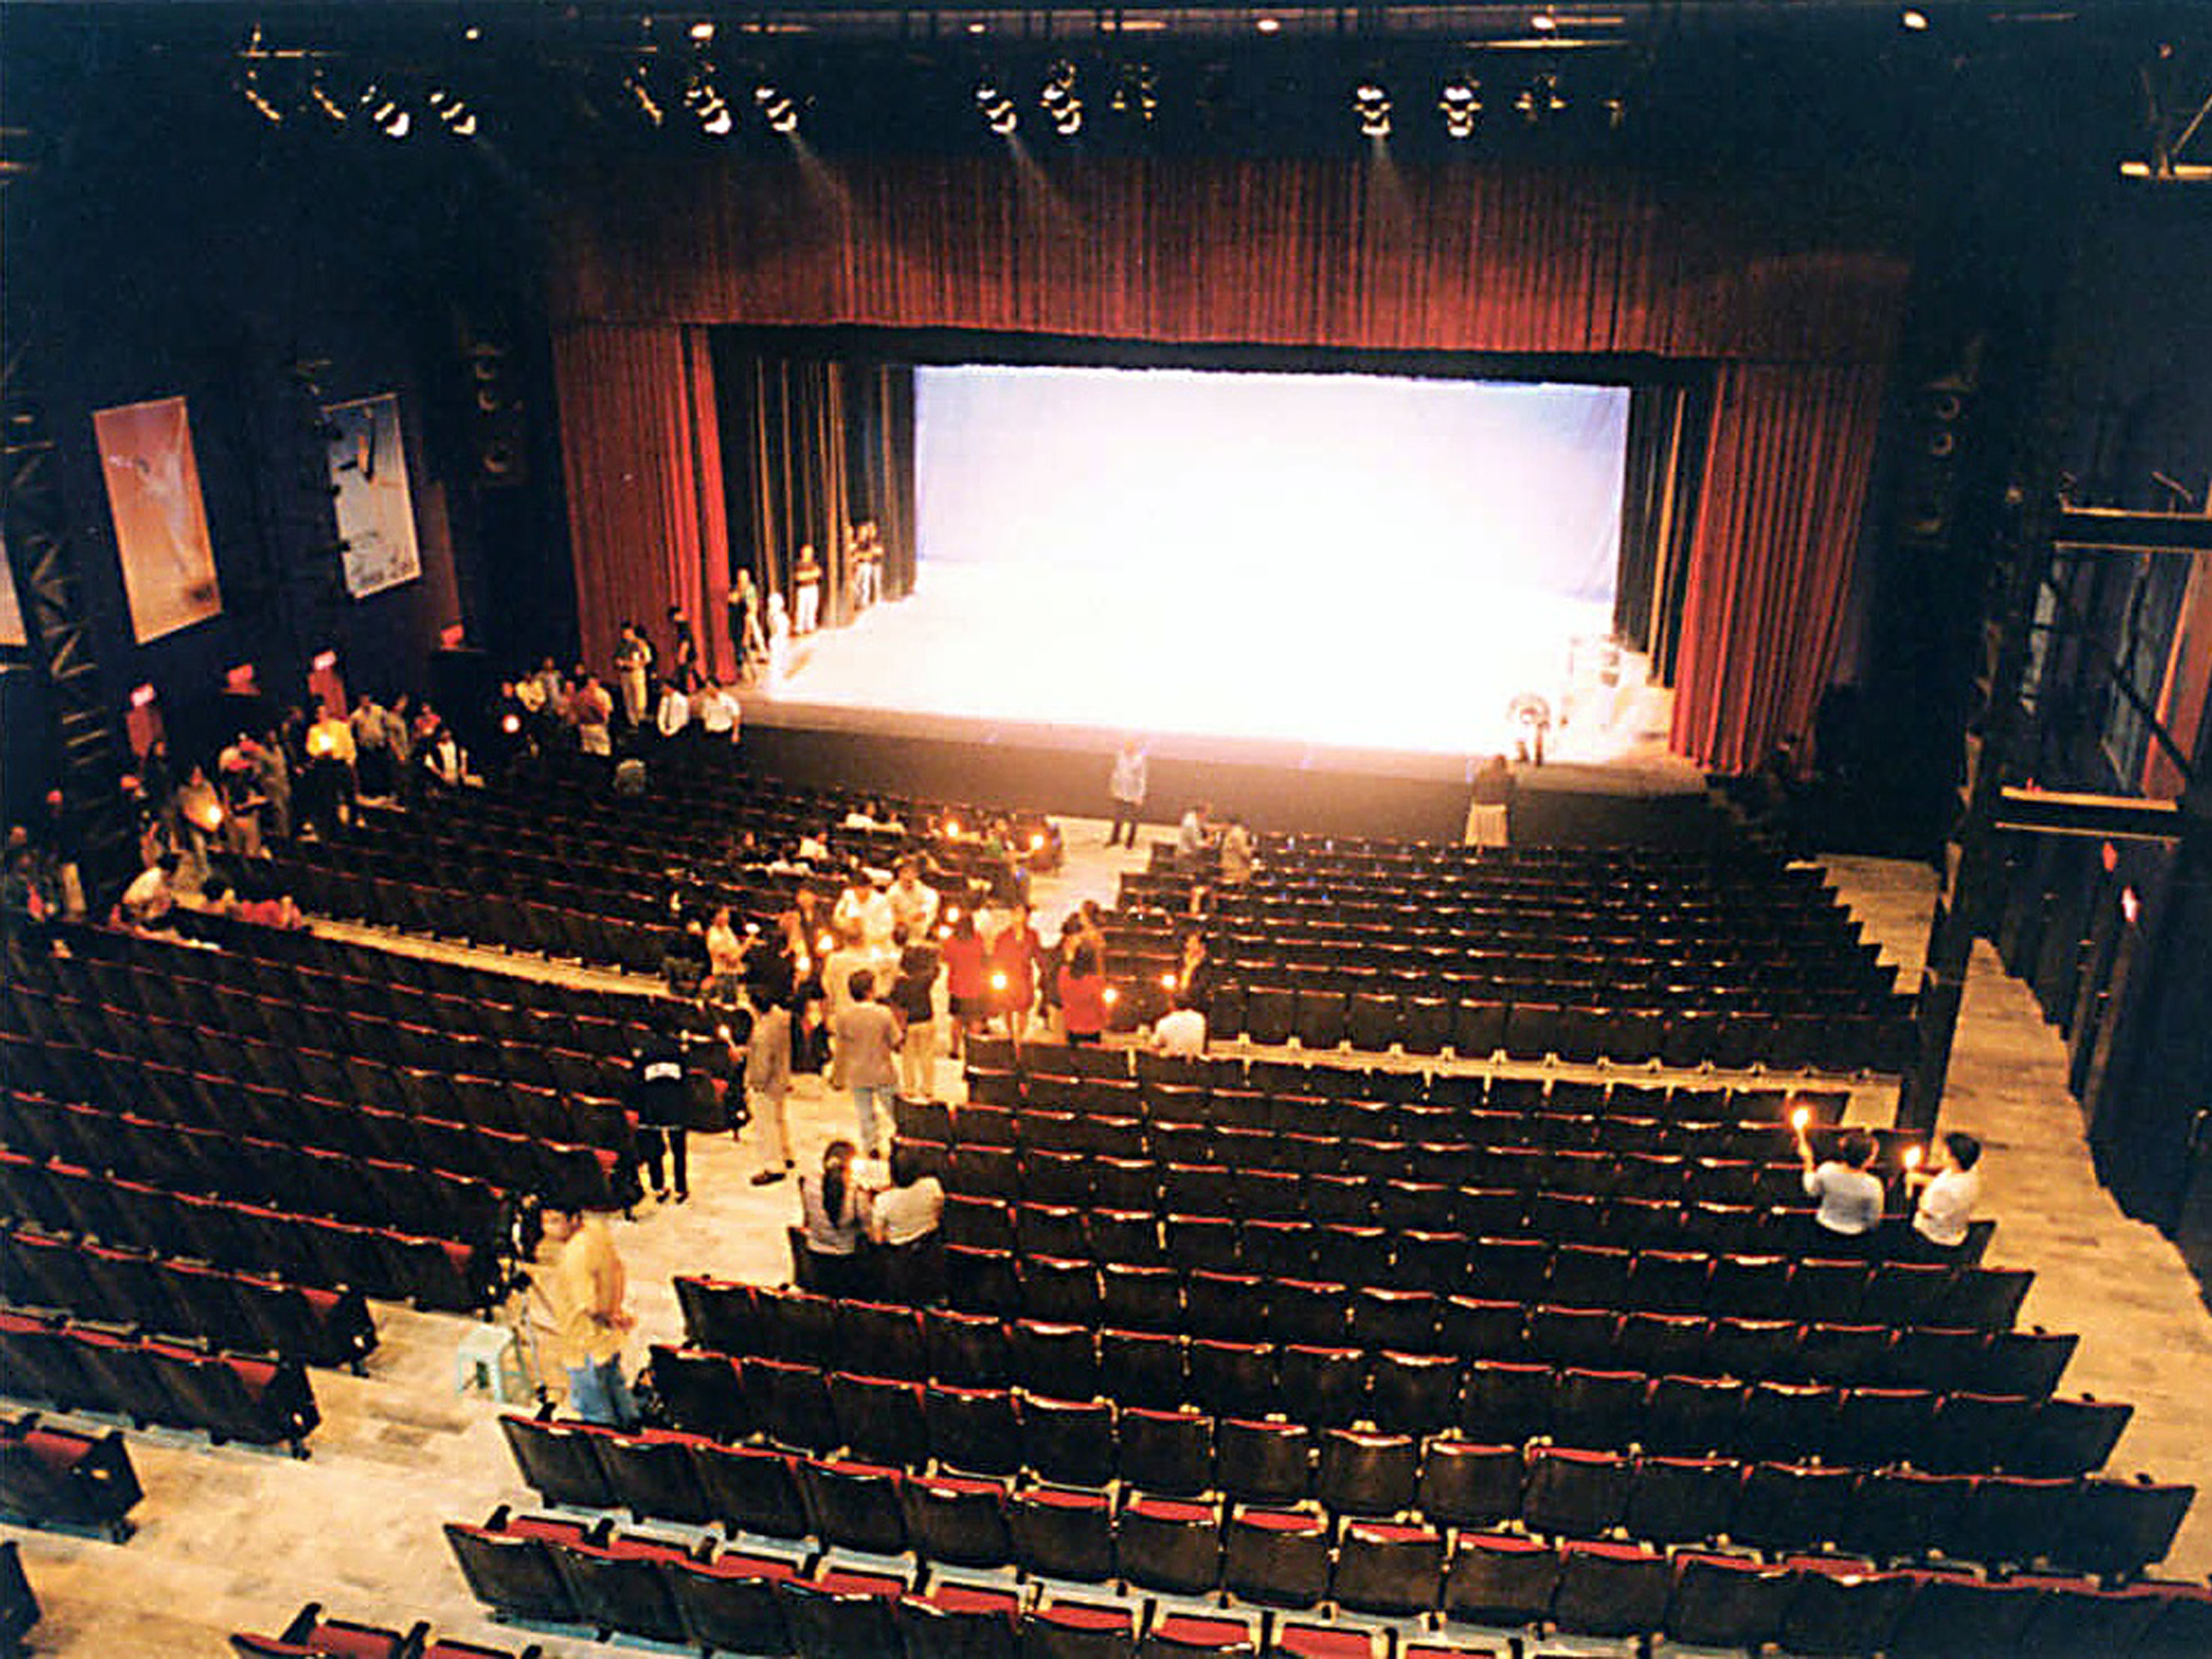 The 850-seater Star Theater, found in the Star City amusement park at the CCP Complex, was Fred's gift to Lisa.